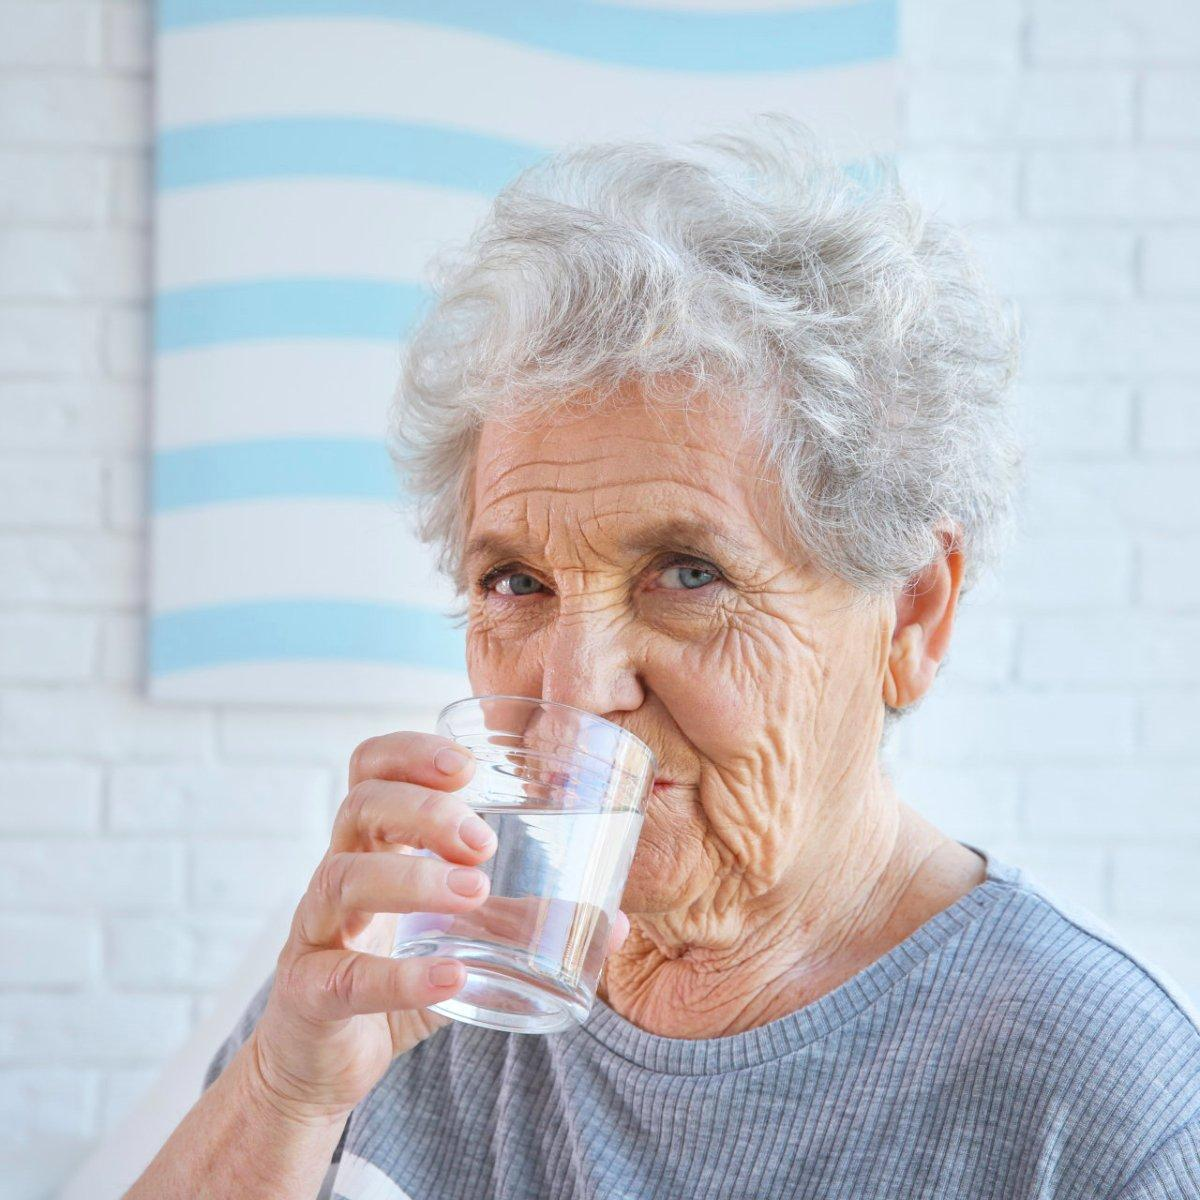 skincare-for-seniors-elderly-woman-drinking-water